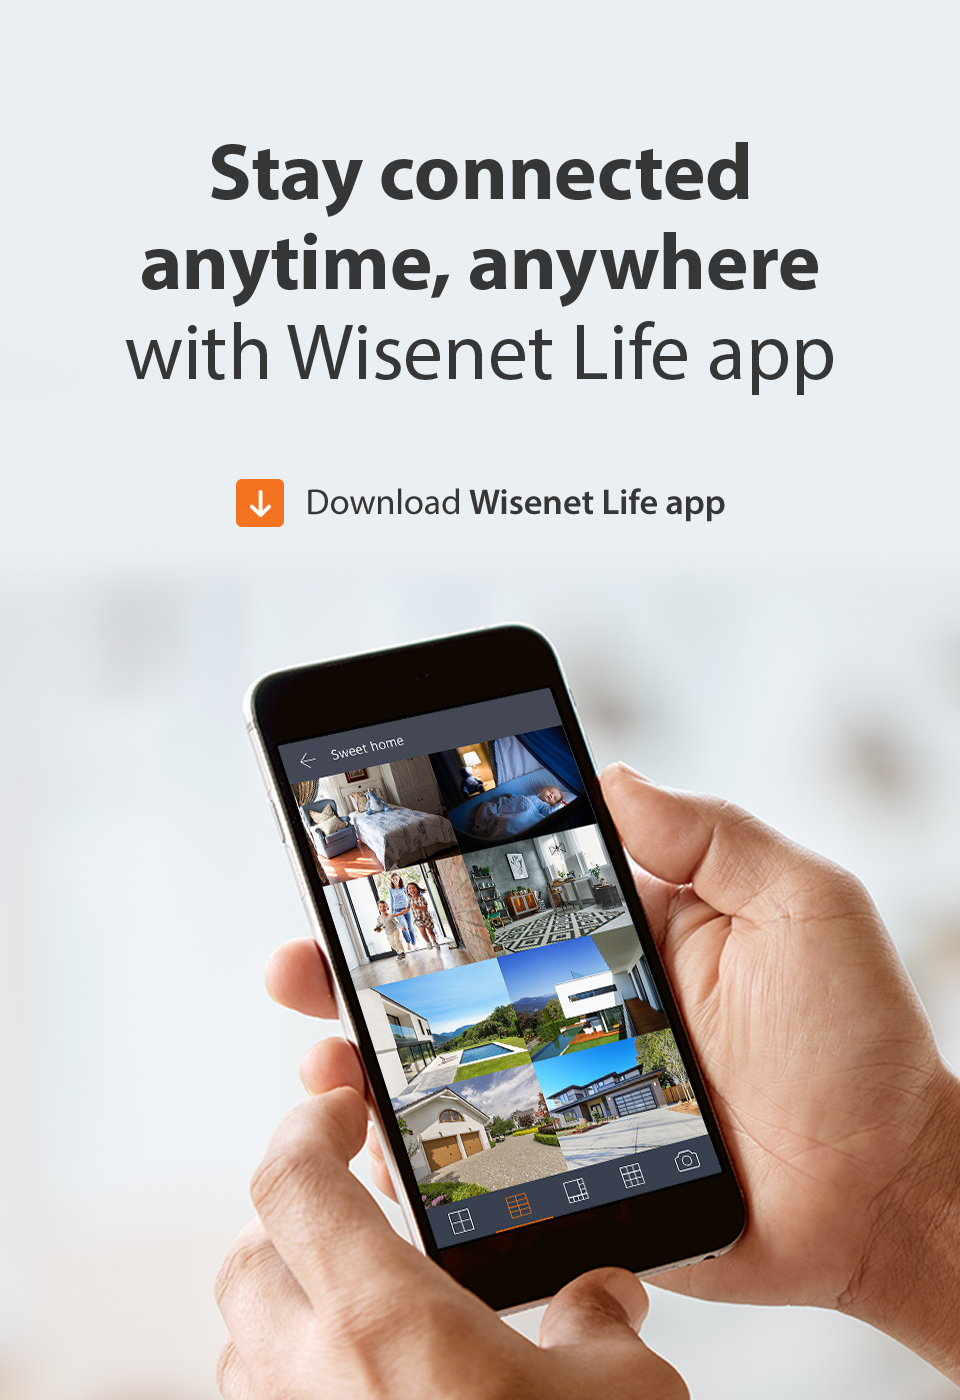 Wisenet - Watch what matters most